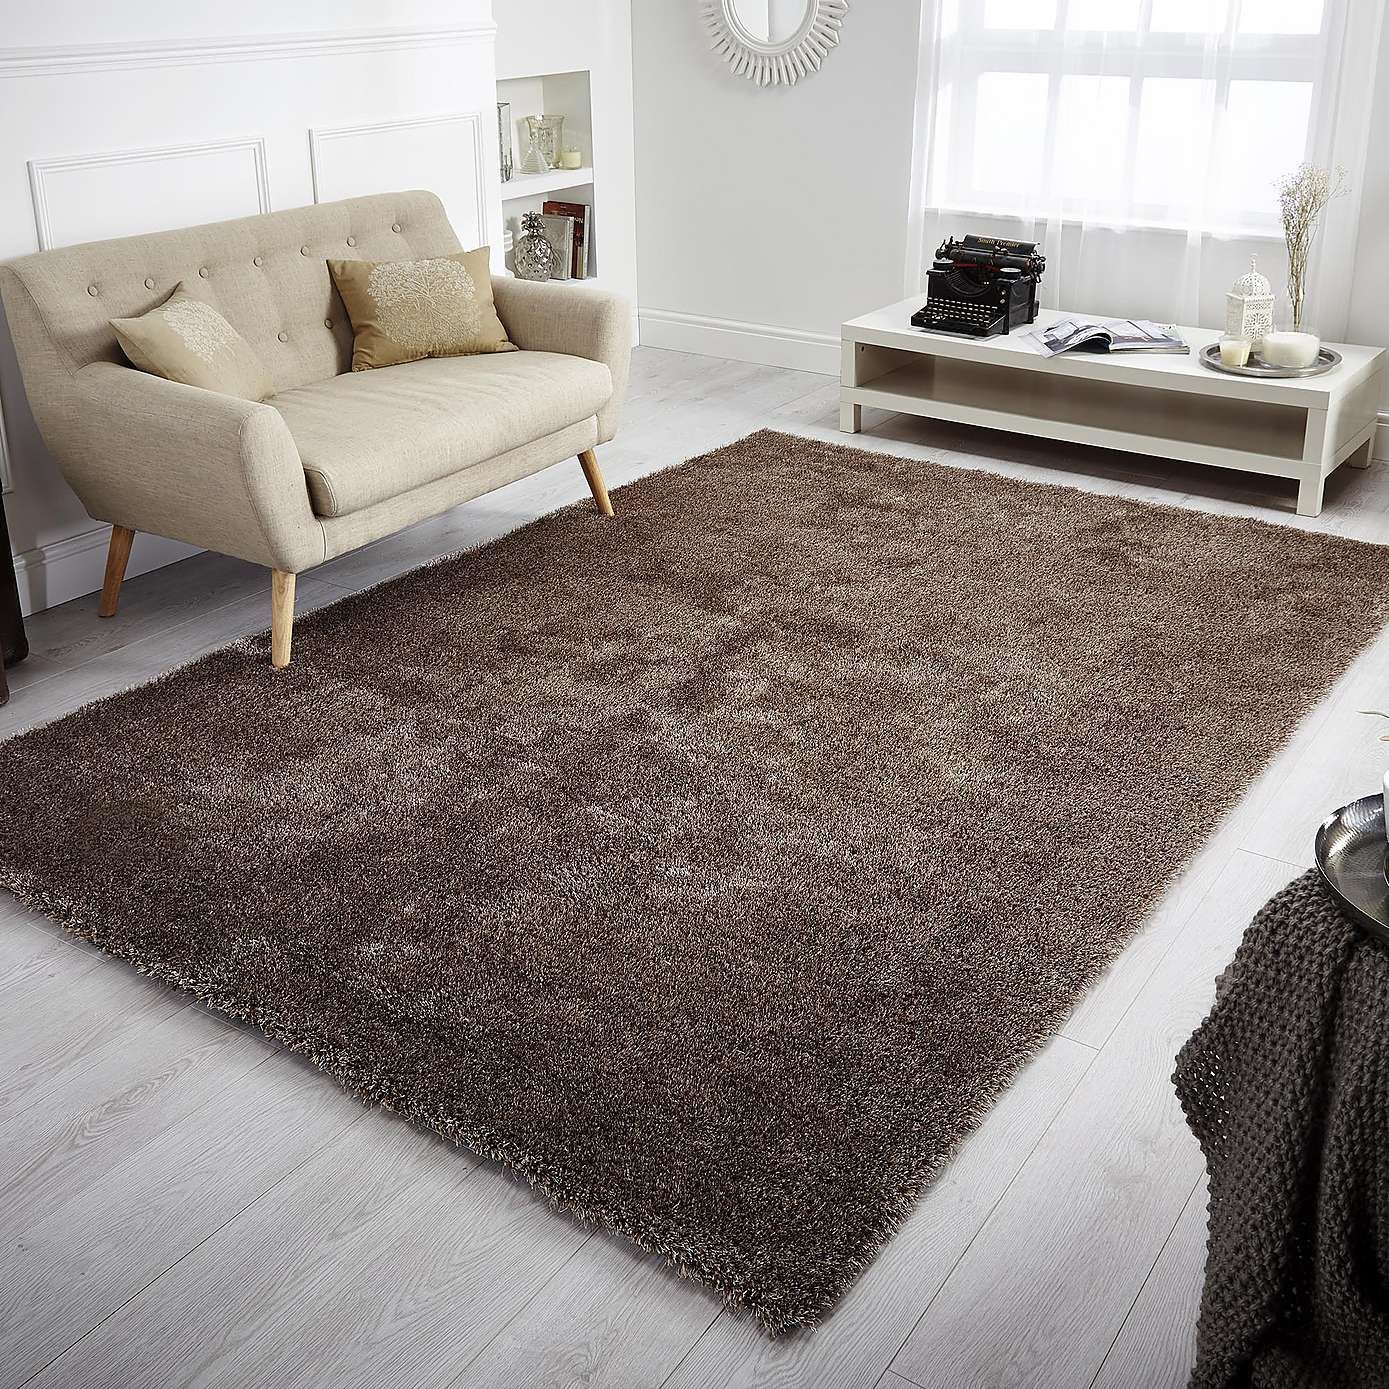 Extra Large Indulgence Shaggy Rug | Dunelm Lounge Rug, Rugs In Living Room,  Living